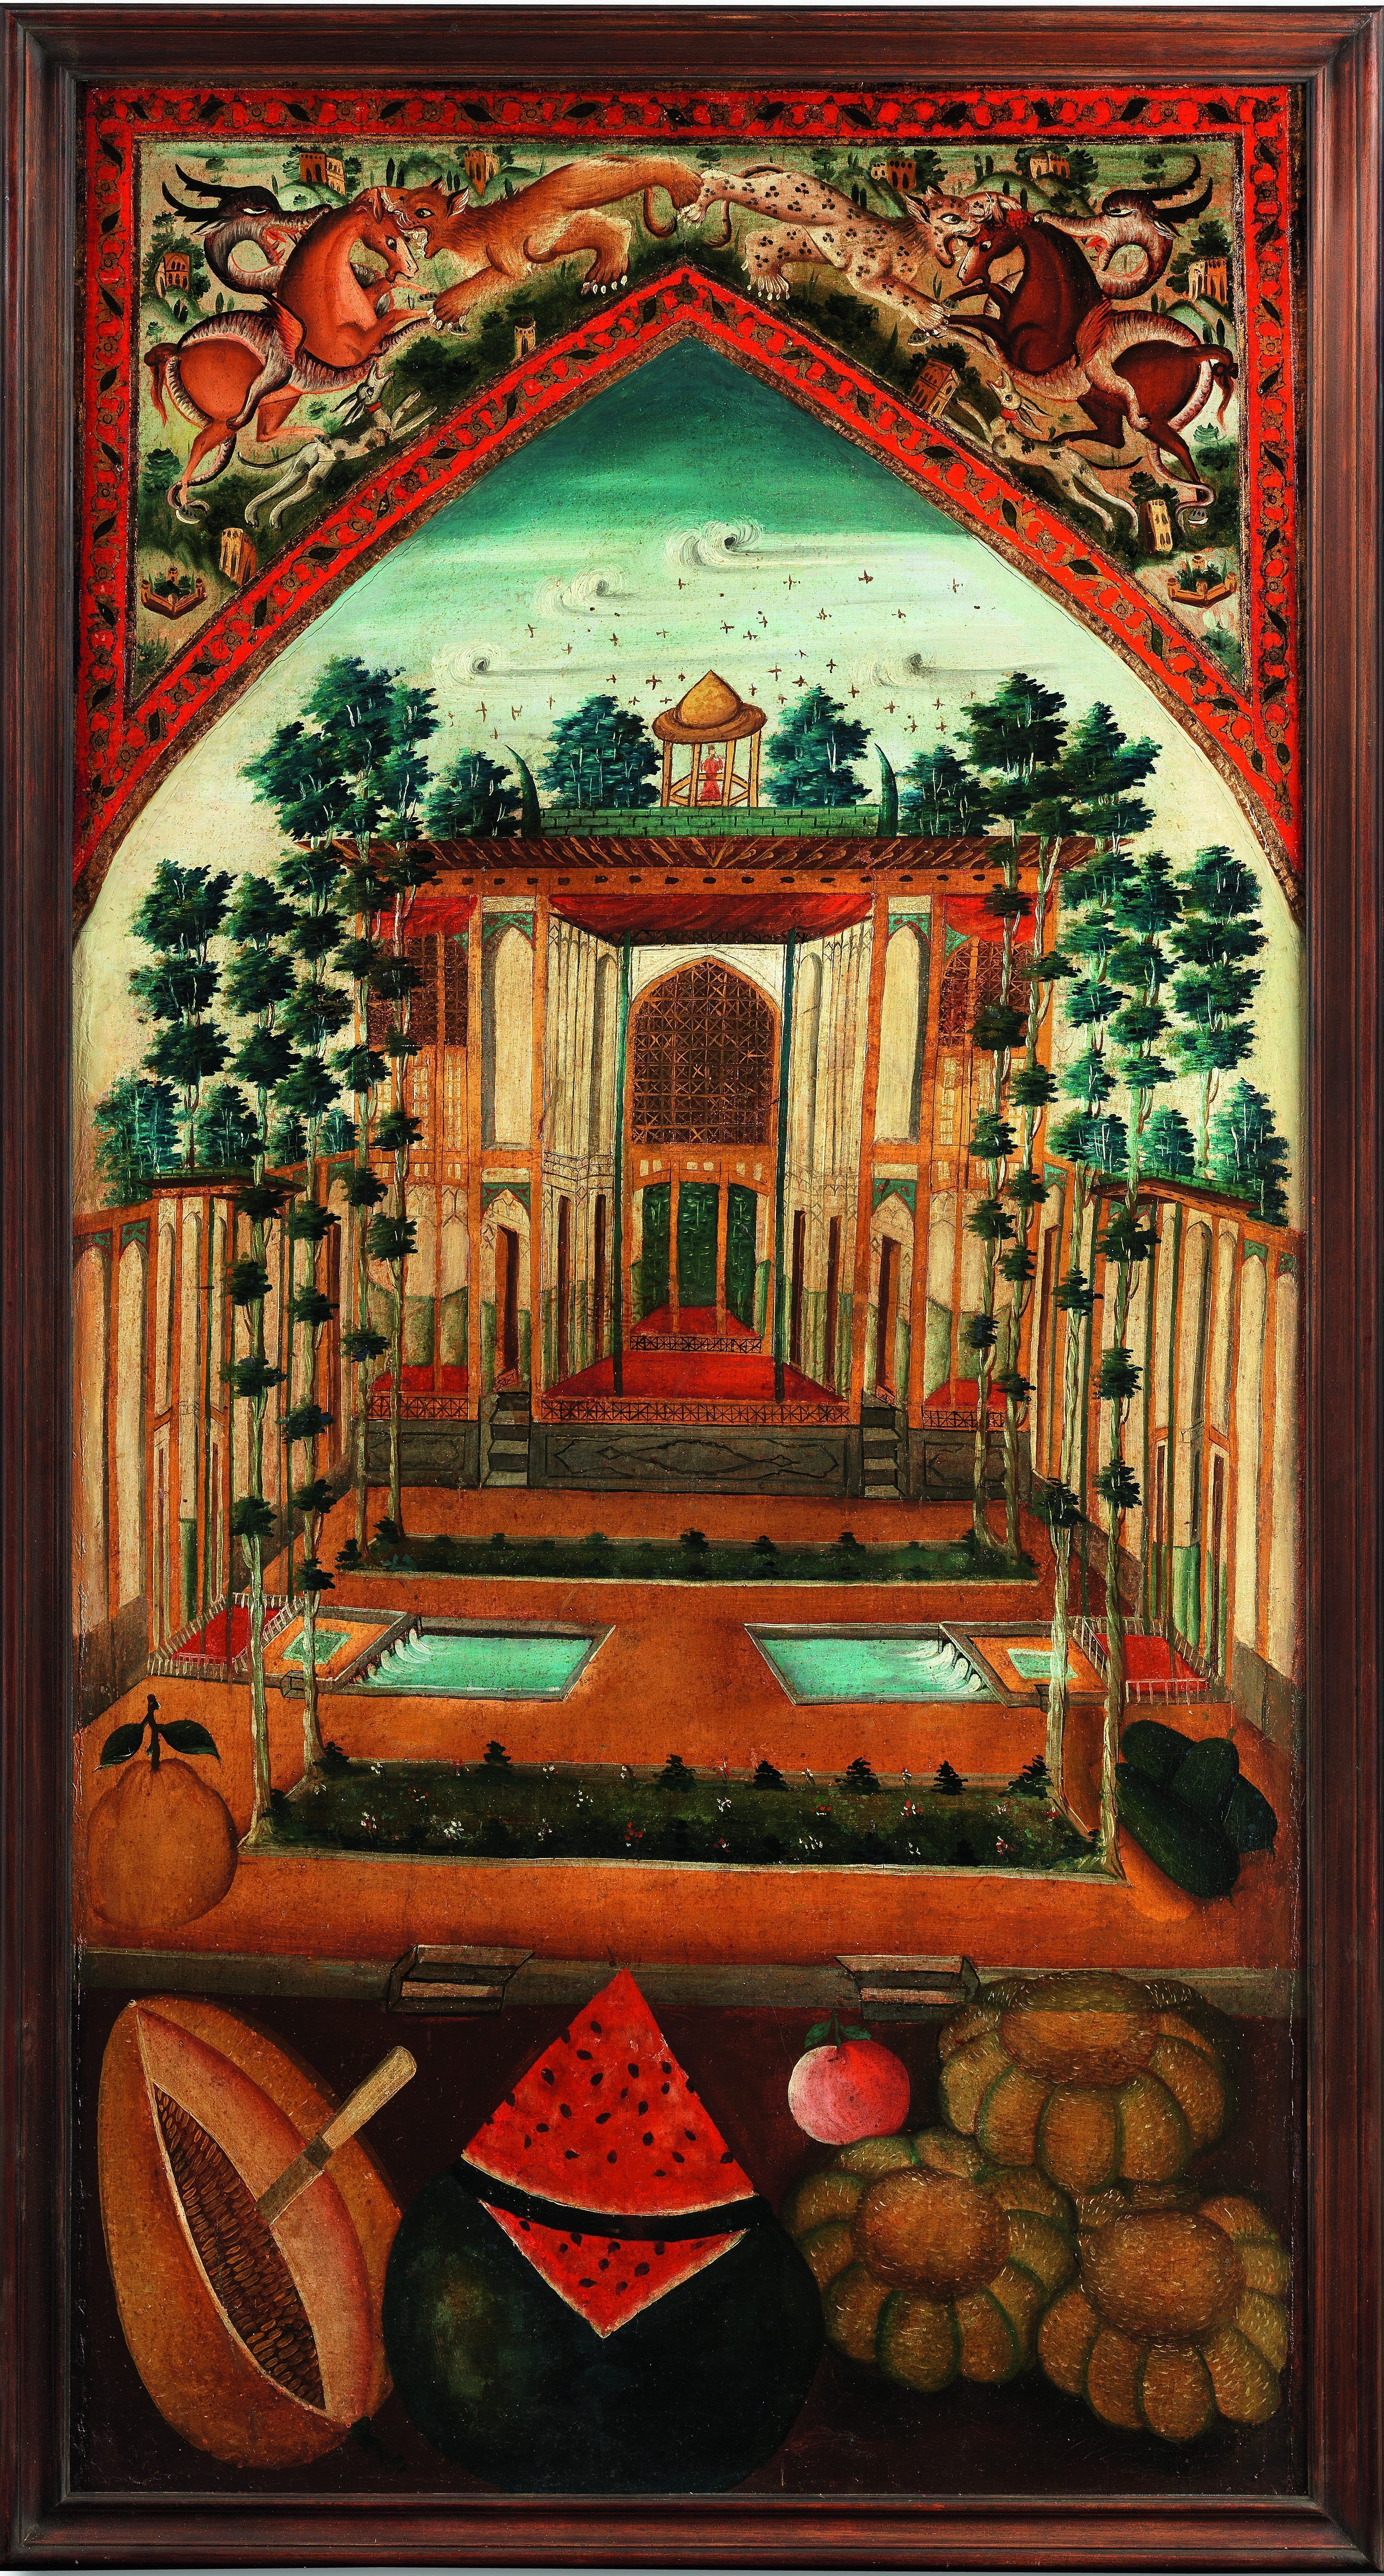 STILL-LIFE-BEFORE-A-PALACE-GARDEN-FROM-THE-COURT-WORKSHOP-e1556283968197